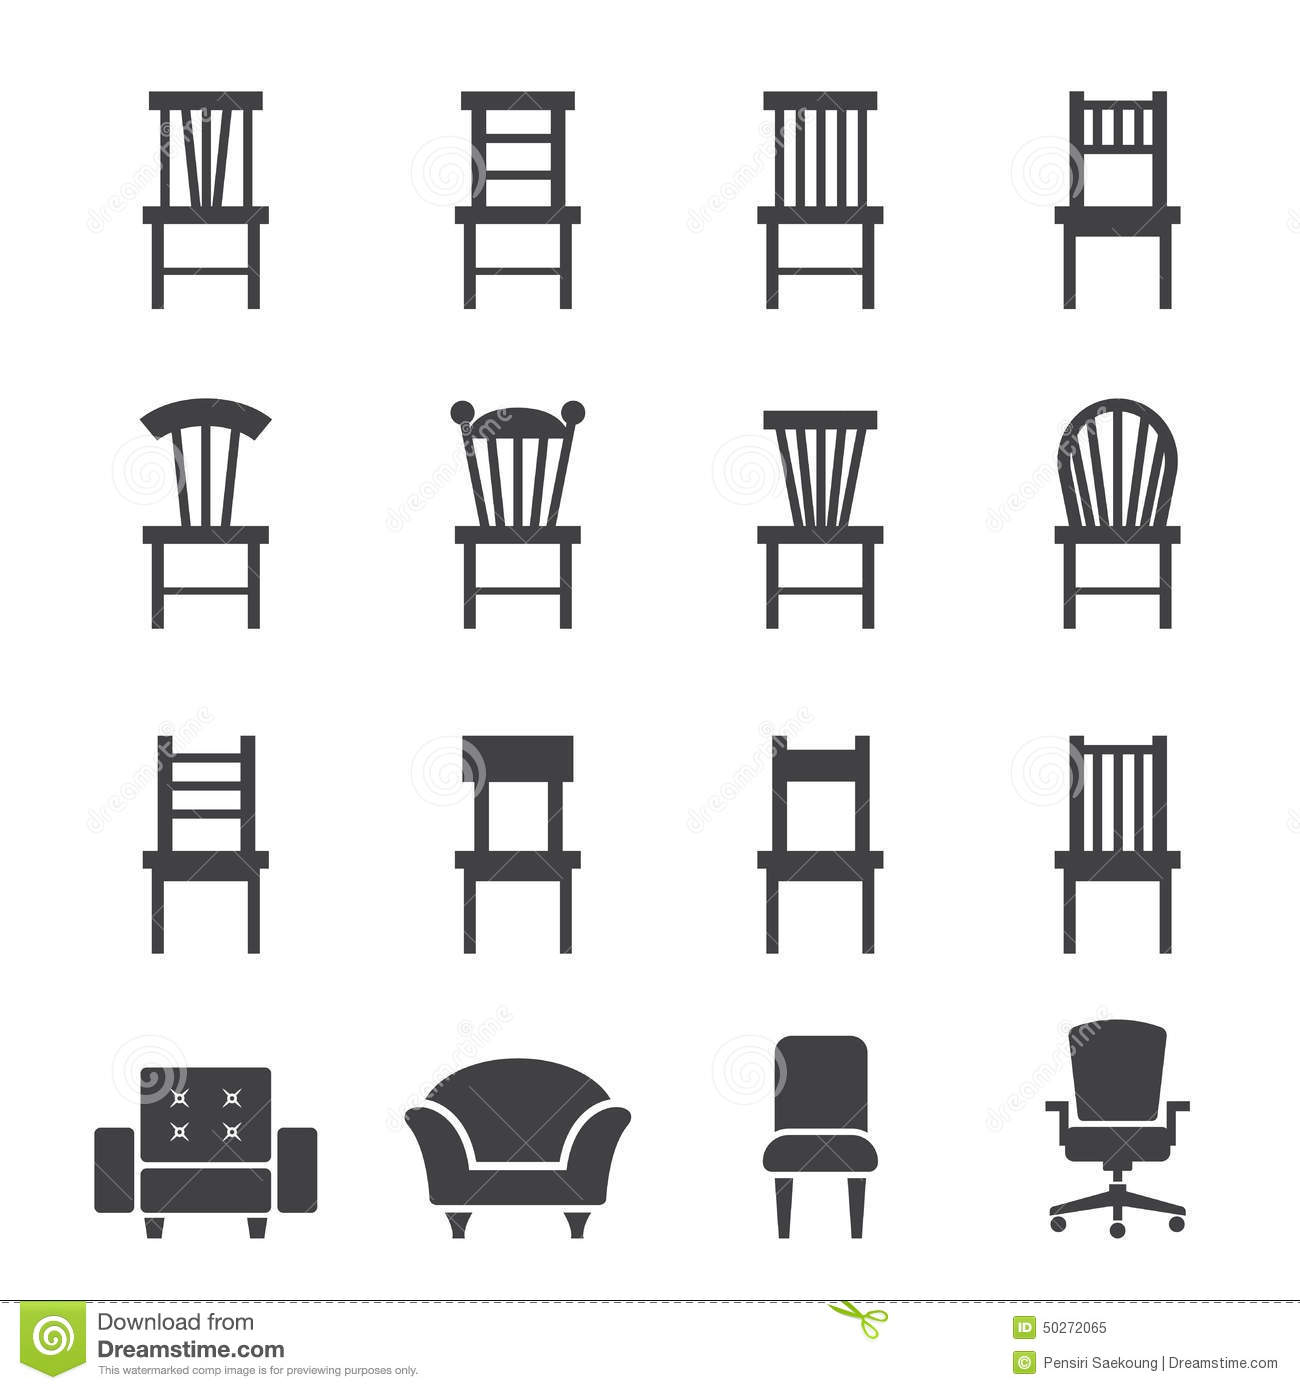 chair design icons posture meaning icon stock vector image of object chaise lounge